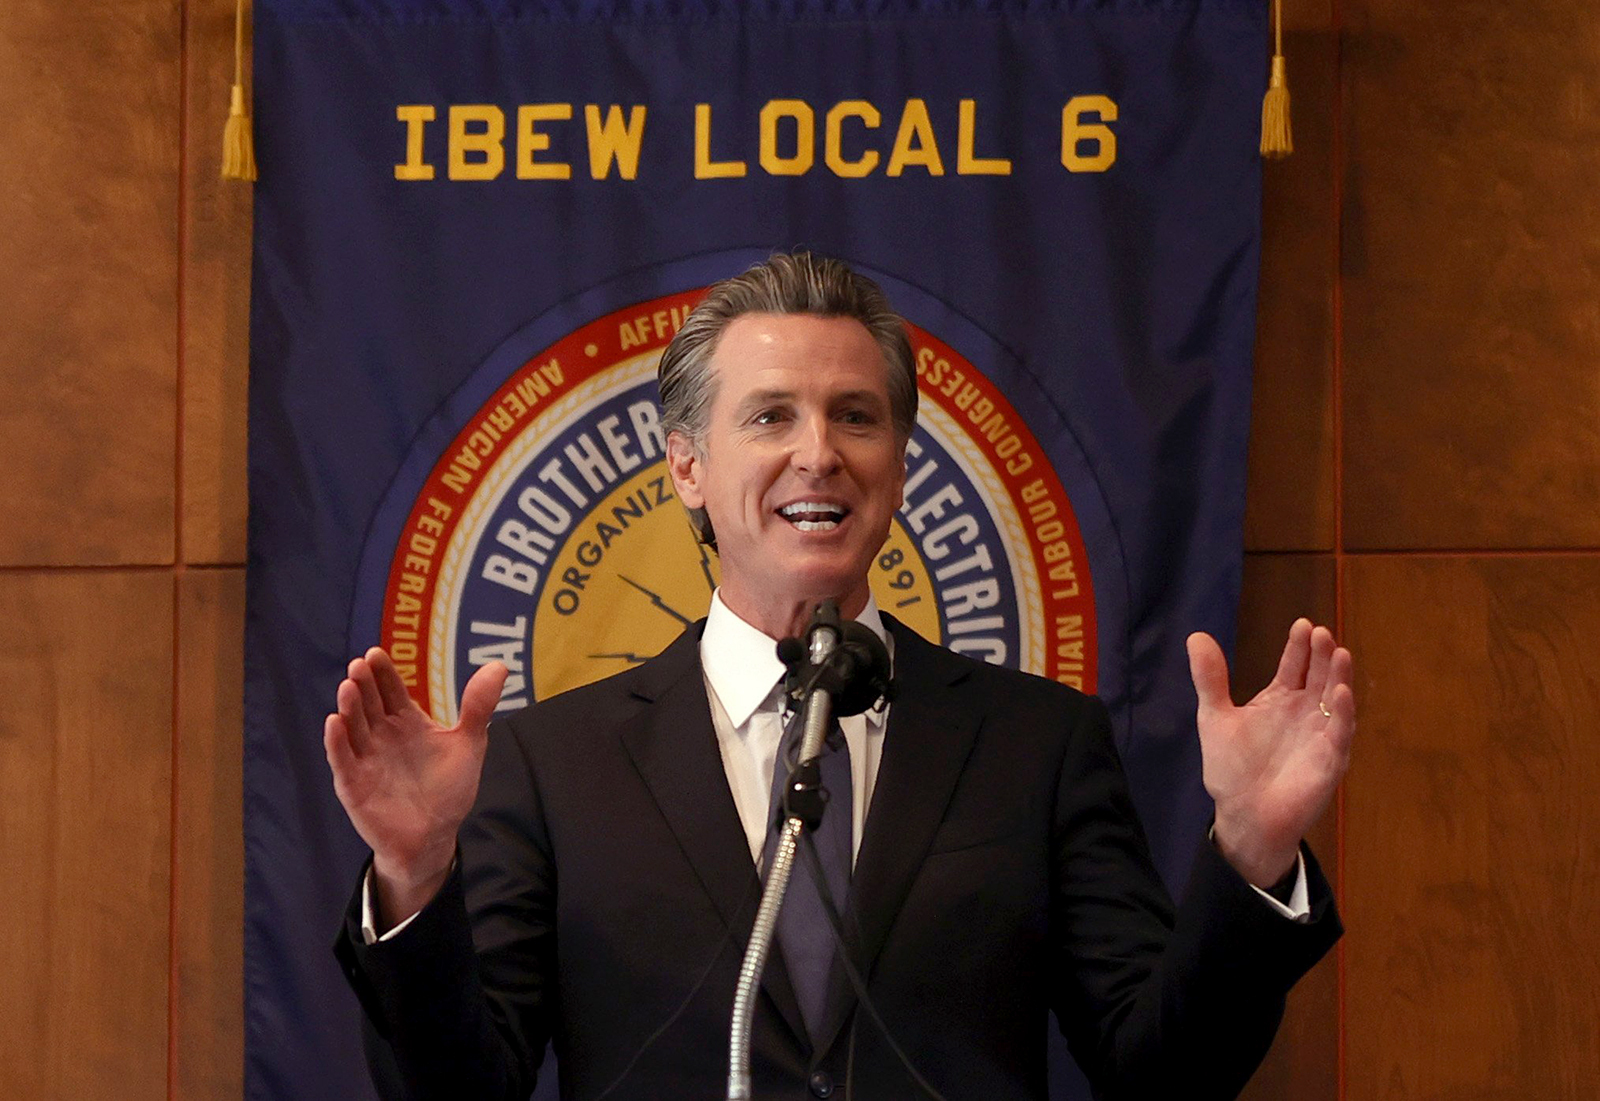 California Gov. Gavin Newsom speaks to union workers and volunteers on election day at the IBEW Local 6 union hall on September 14 in San Francisco.